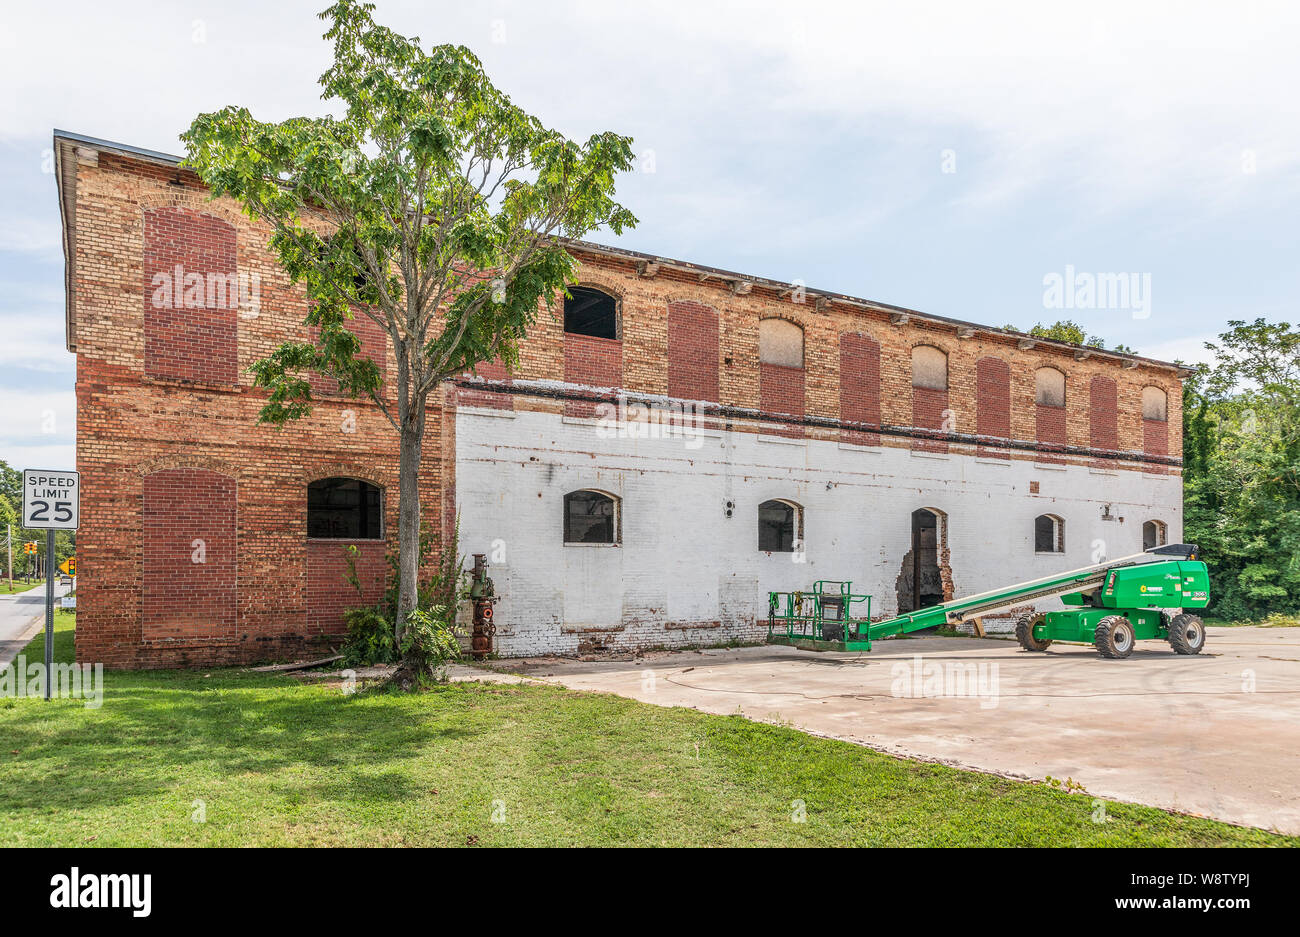 Cotton Mill Stock Photos & Cotton Mill Stock Images - Alamy